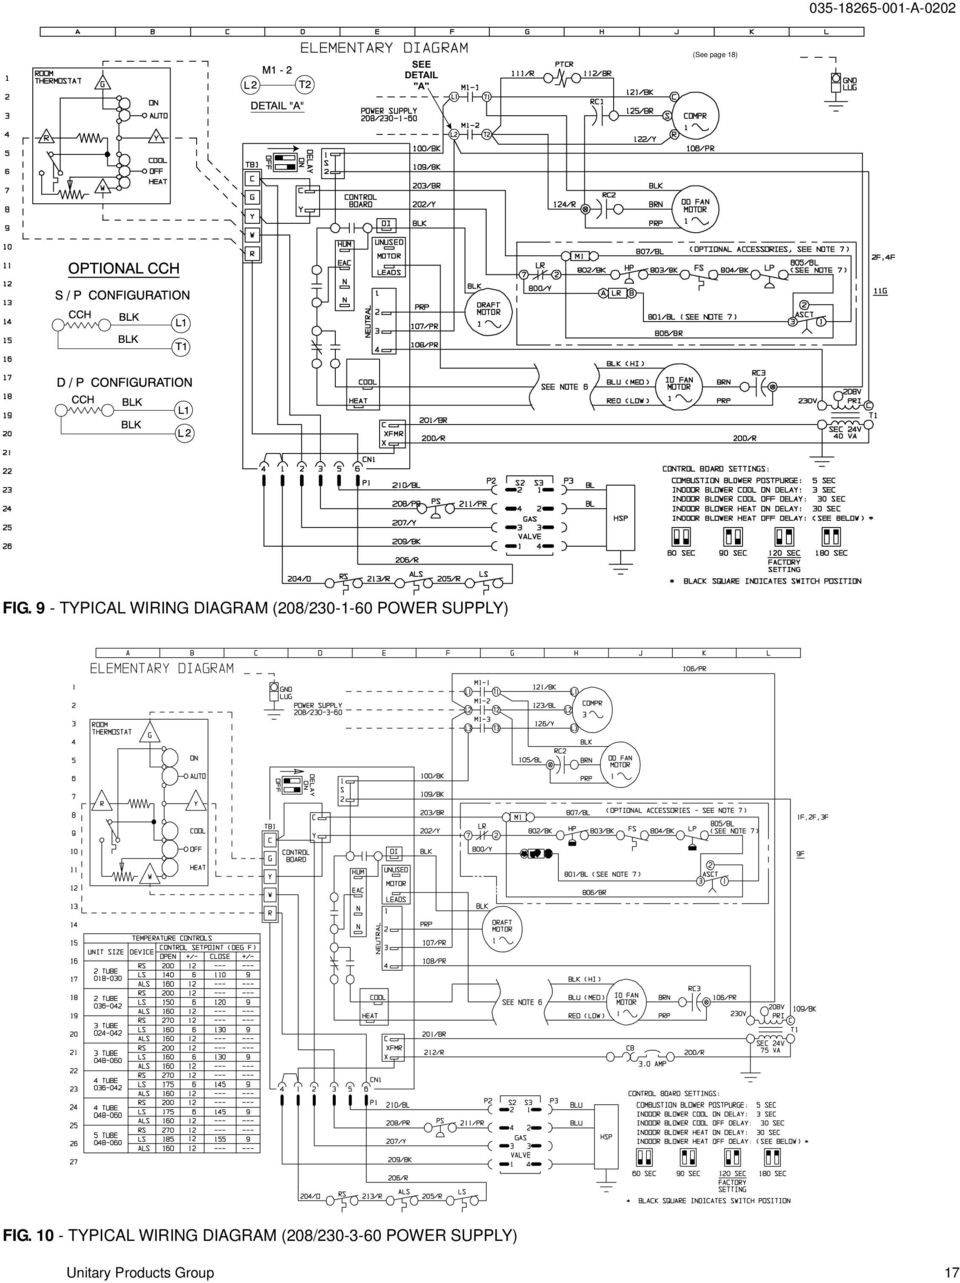 York Sunline 2000 Wiring Diagram Free Download • Oasis-dl.co